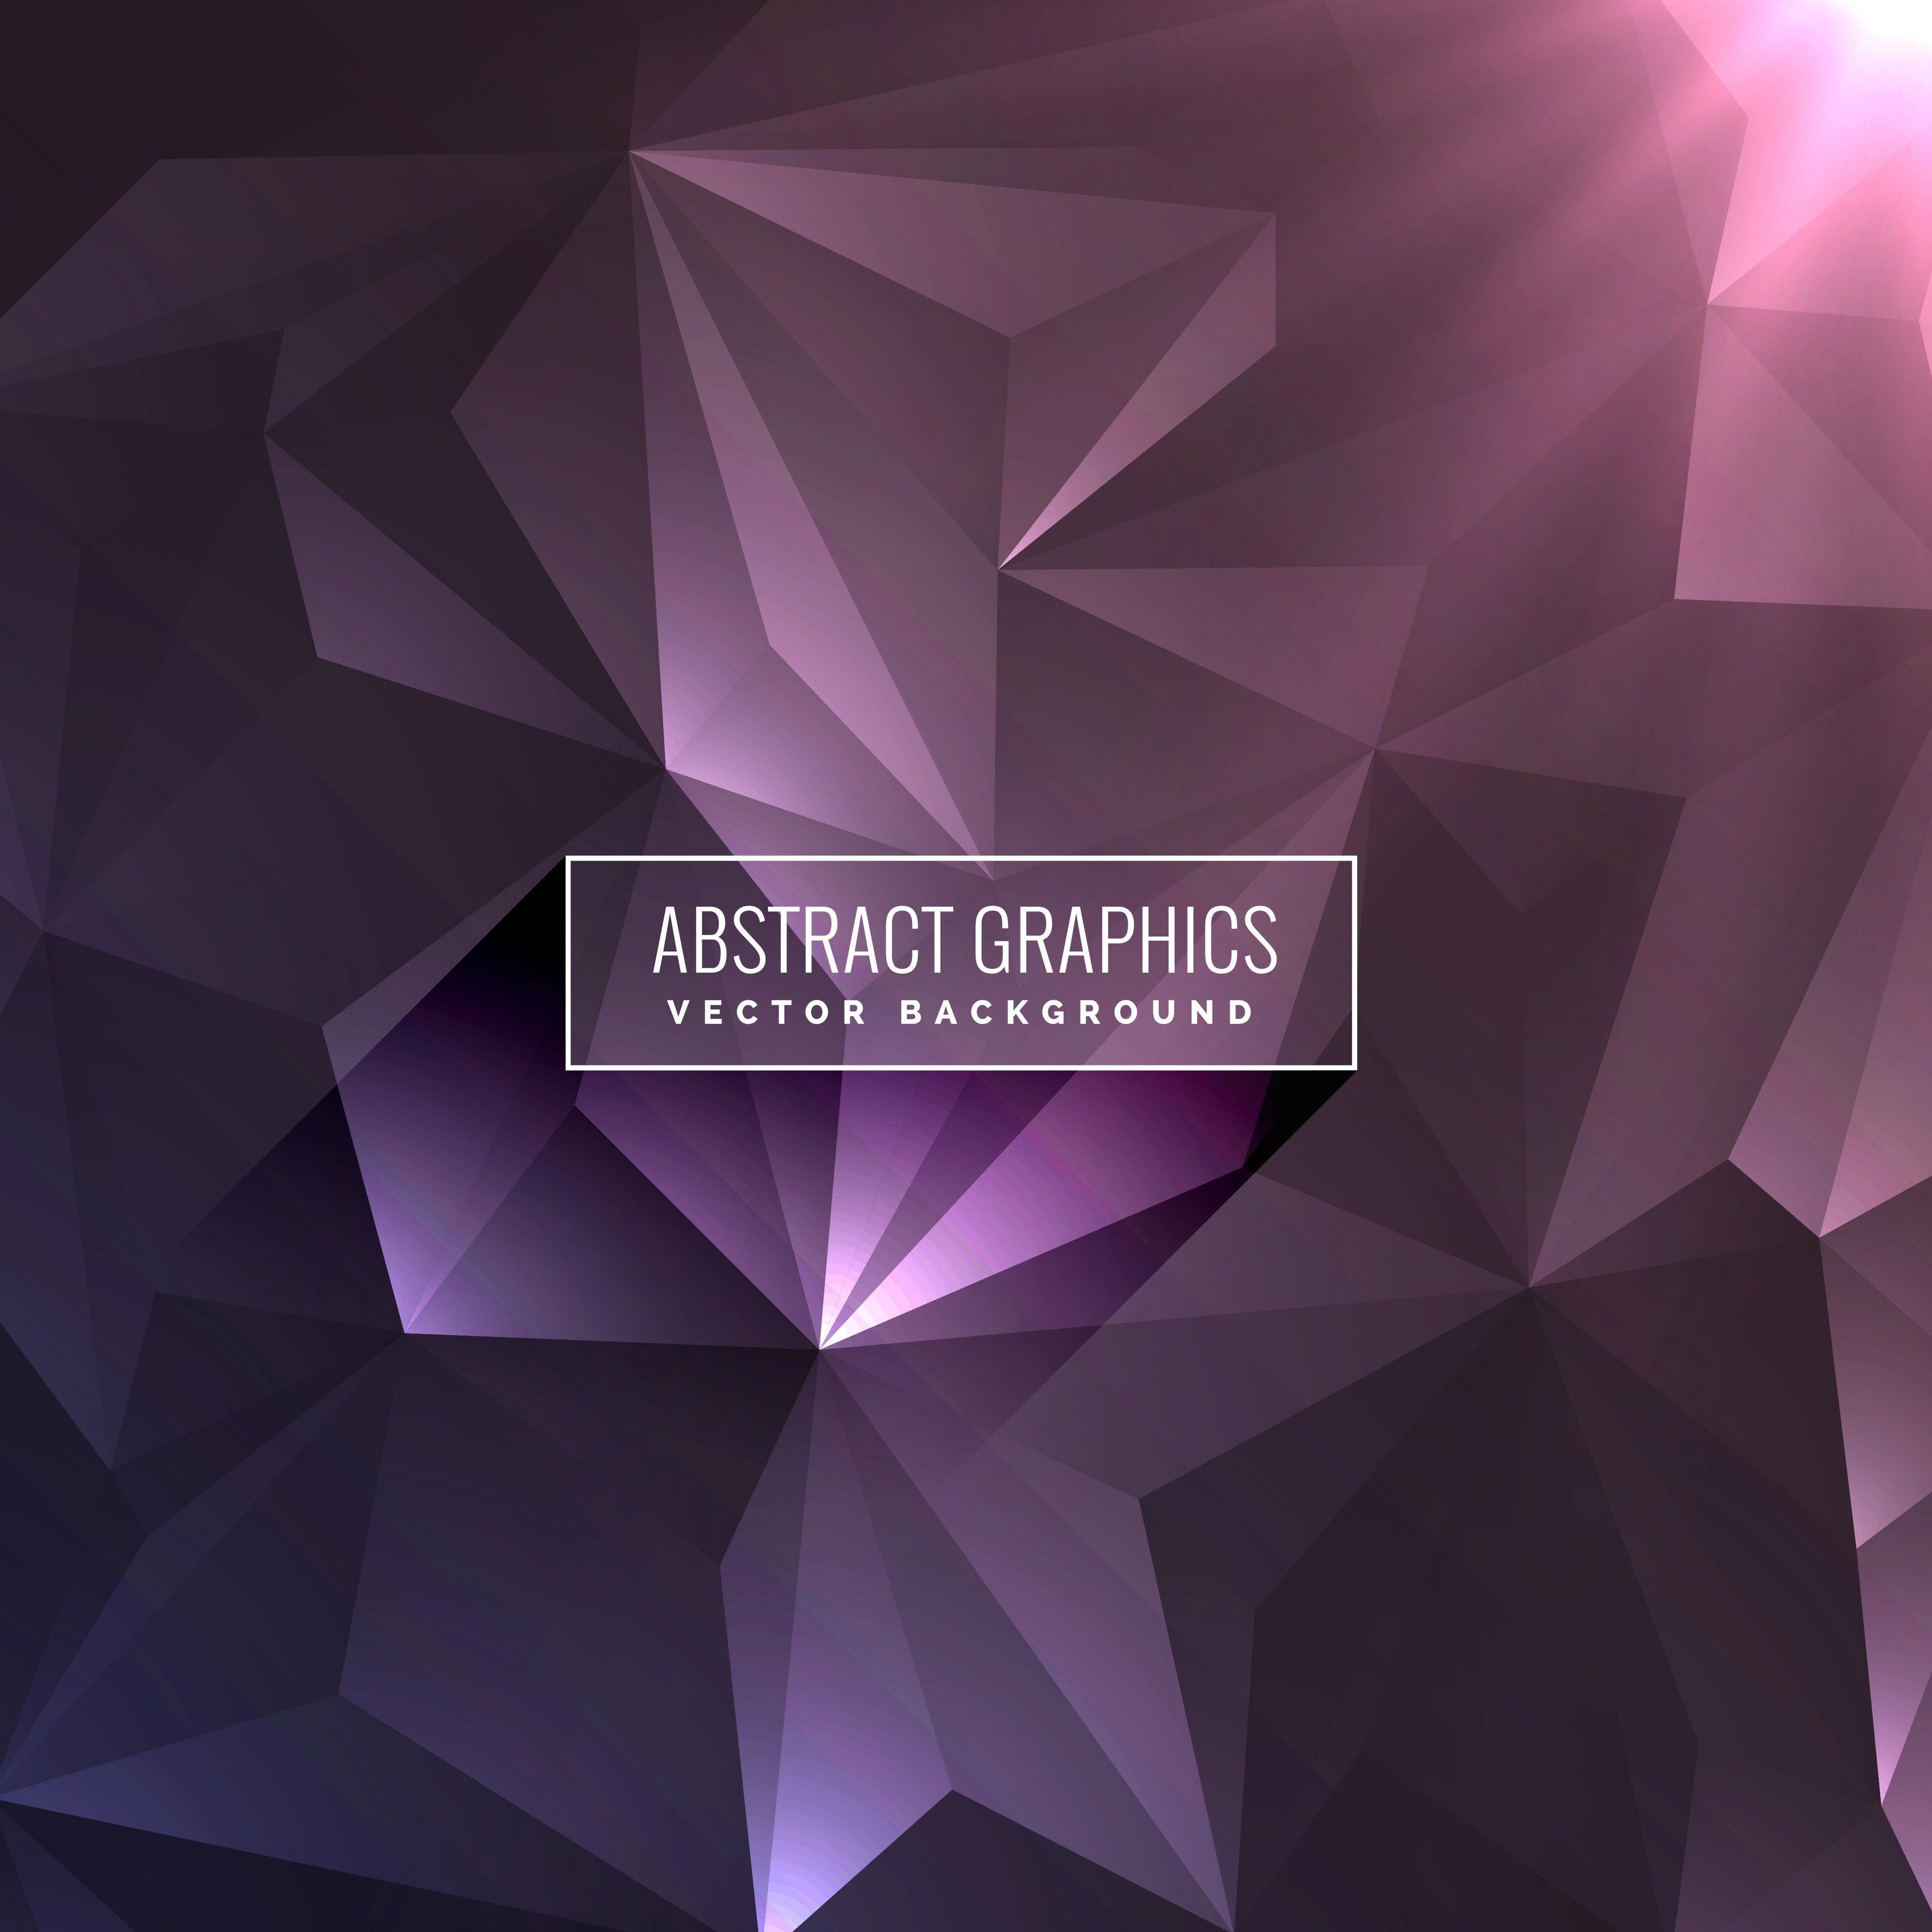 3d Geometric Shapes Wallpaper White Abstract Dark Purple Background With Triangle Shapes